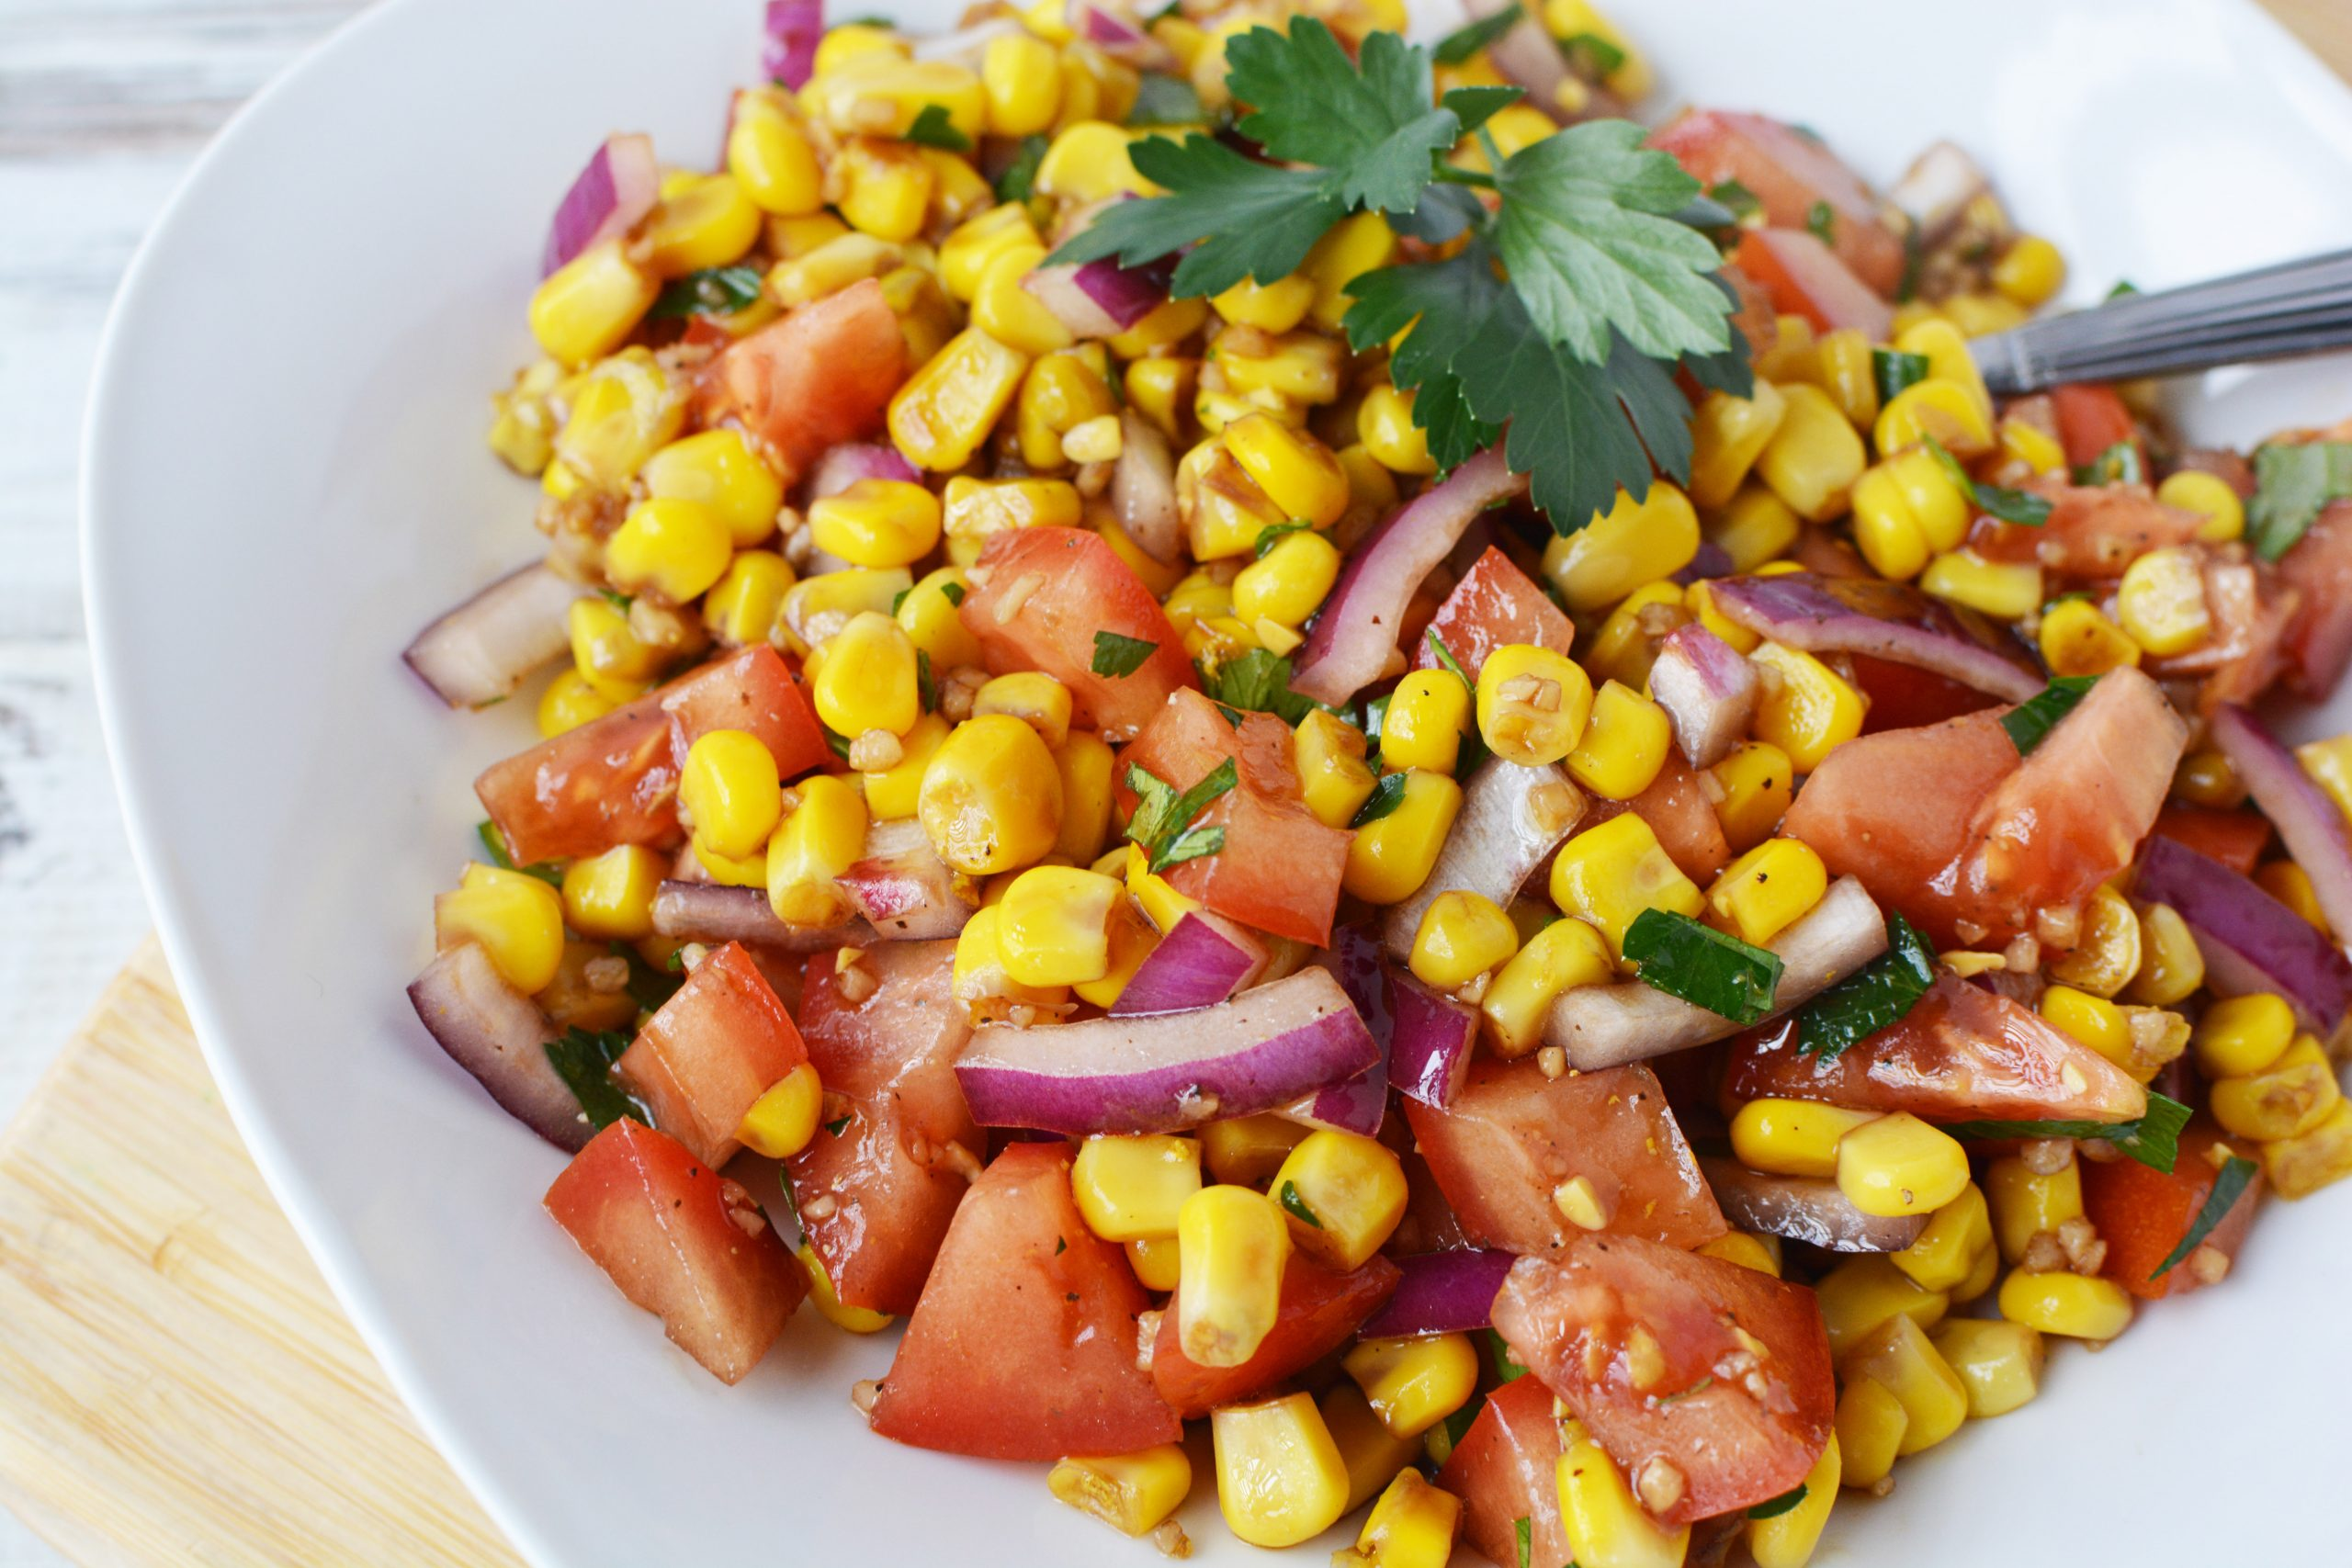 Corn and Tomato Salad makes a great summer side dish.